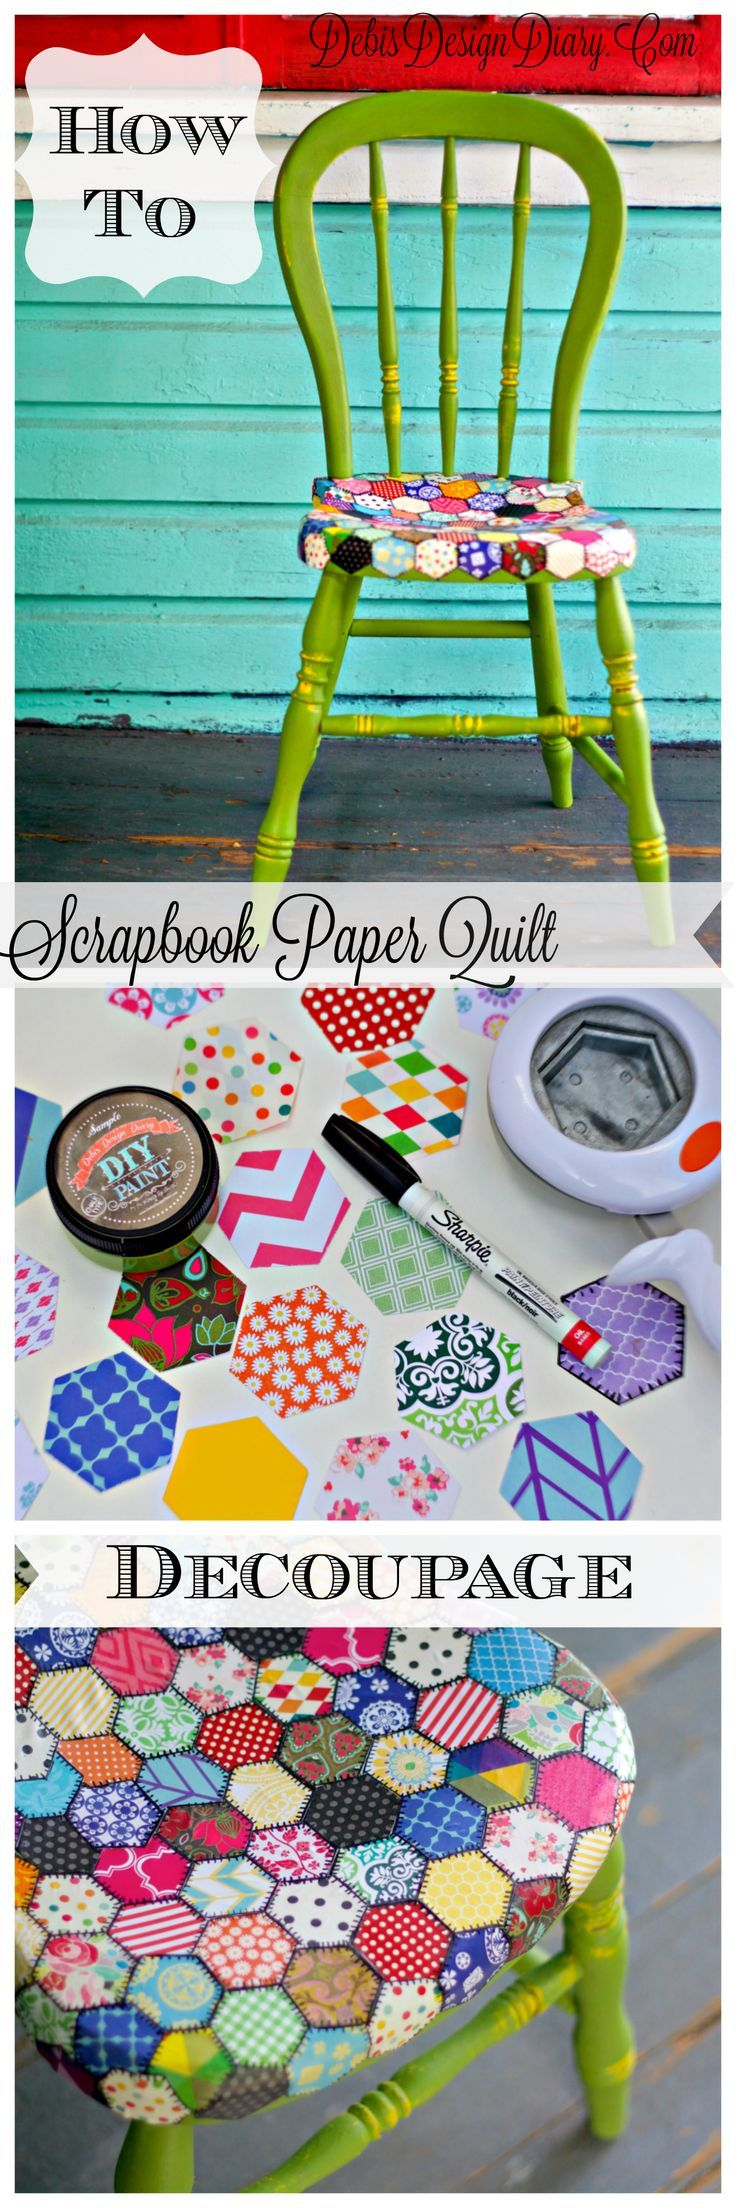 decoupage ideas for furniture. How To Decoupage Furniture In A Quilt Pattern With Scrapbook Paper. Also, This Chair Was Painted 2 Ounces Of DIY Paint! Ideas For